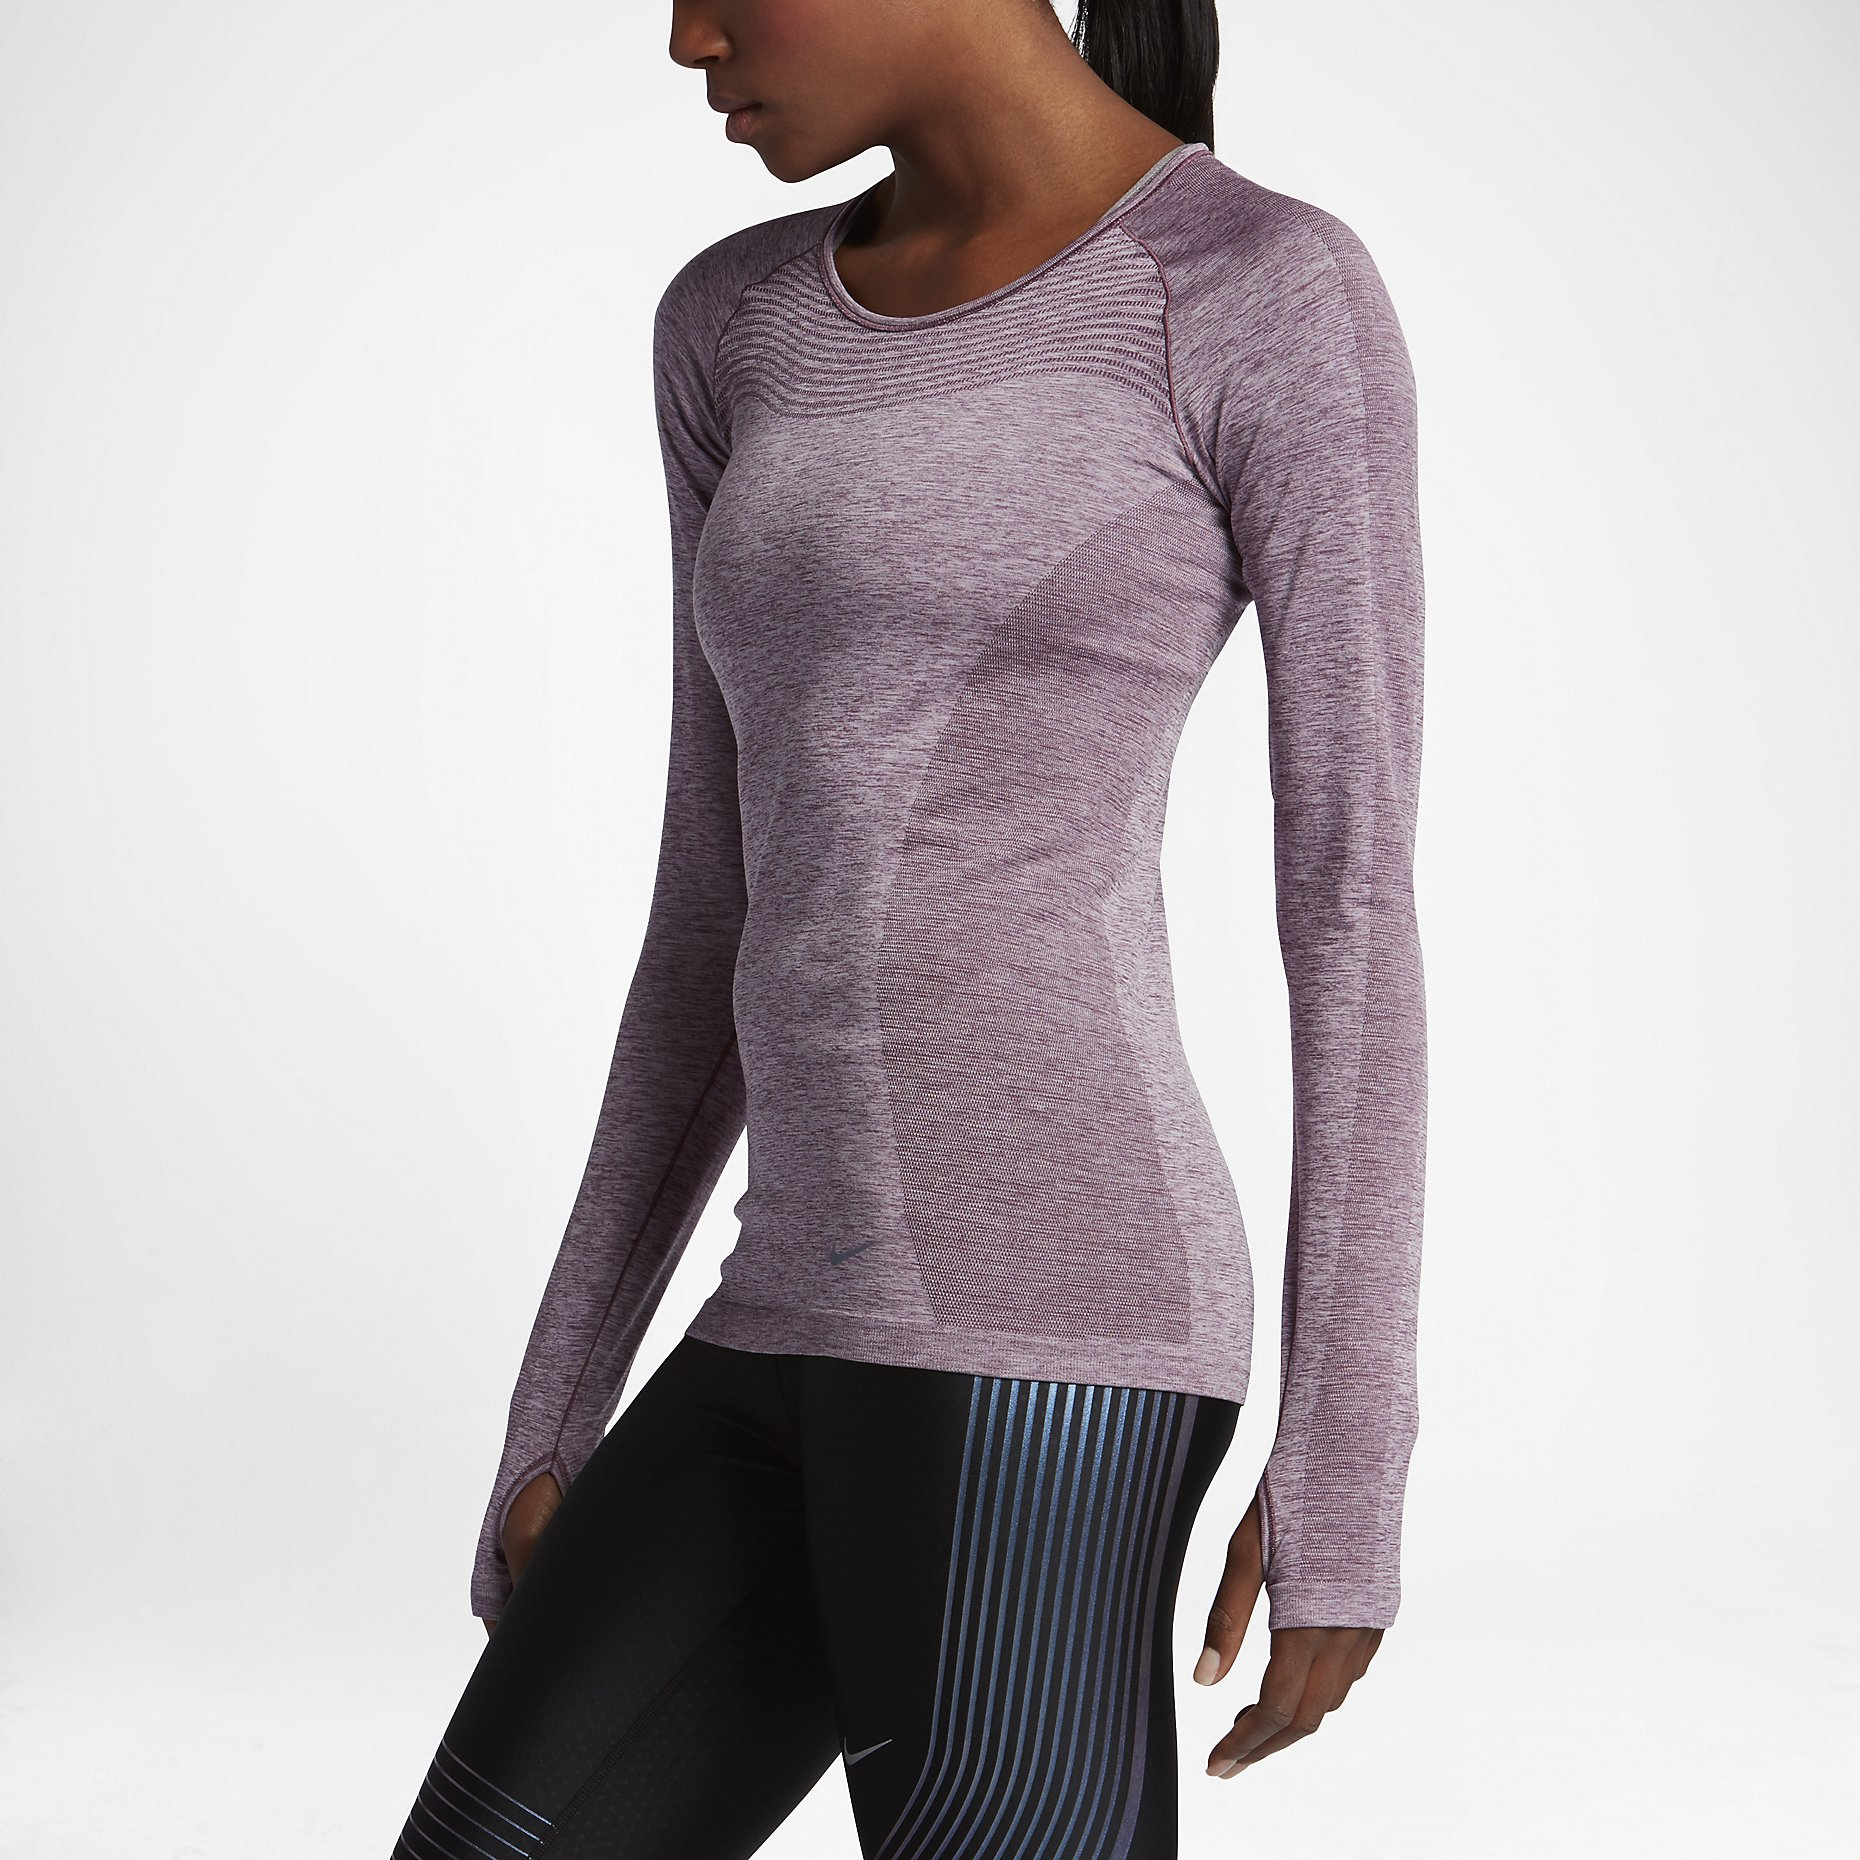 nike dri fit knit,nike dri fit knit dark